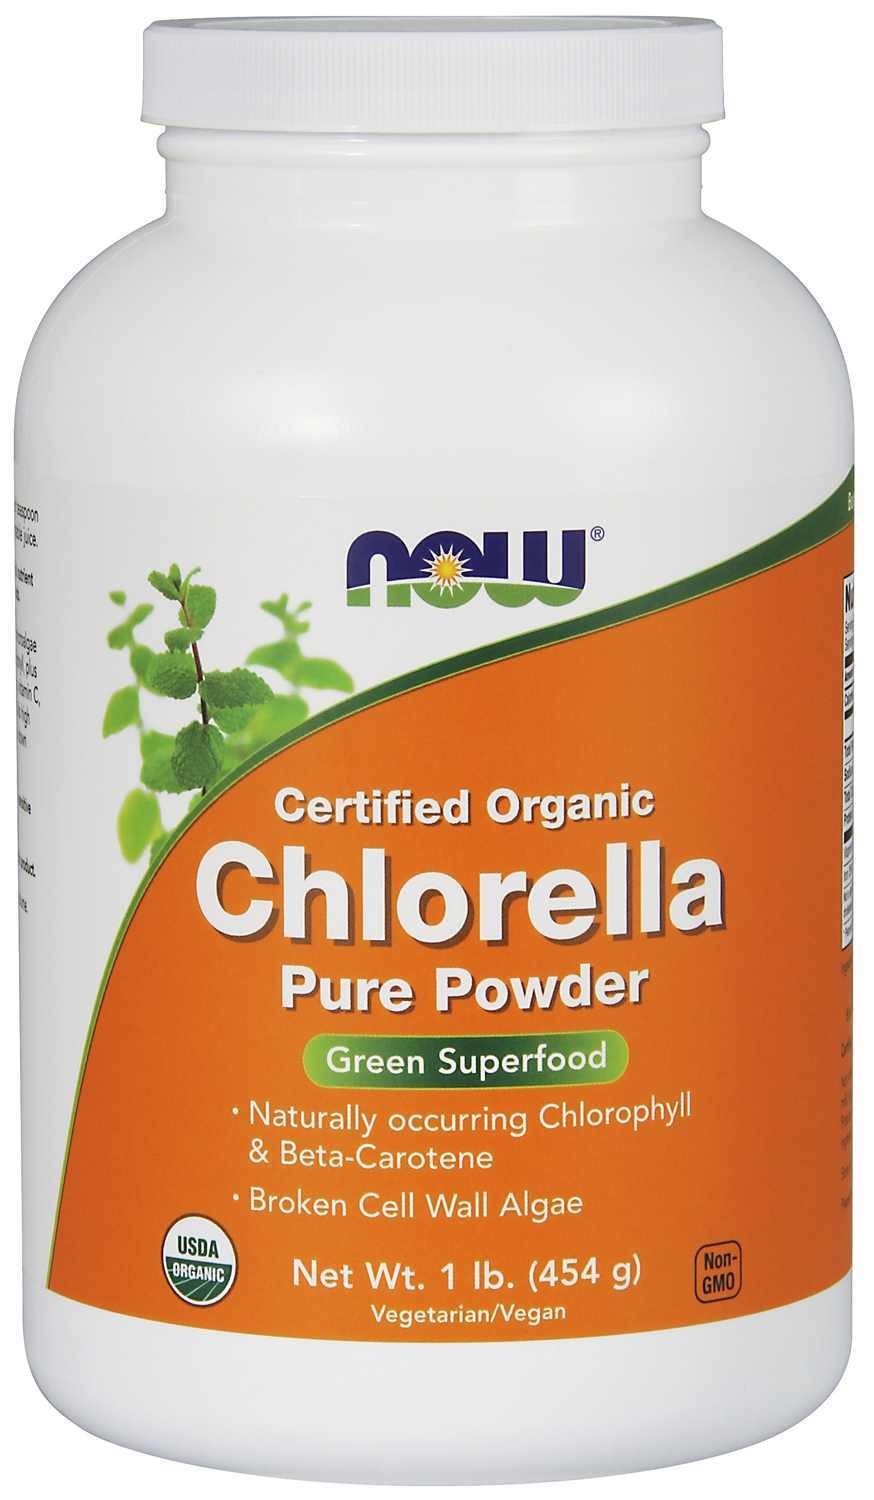 Chlorella 100% Pure Powder Certified Organic 1 lb (454 g) by NOW Foods